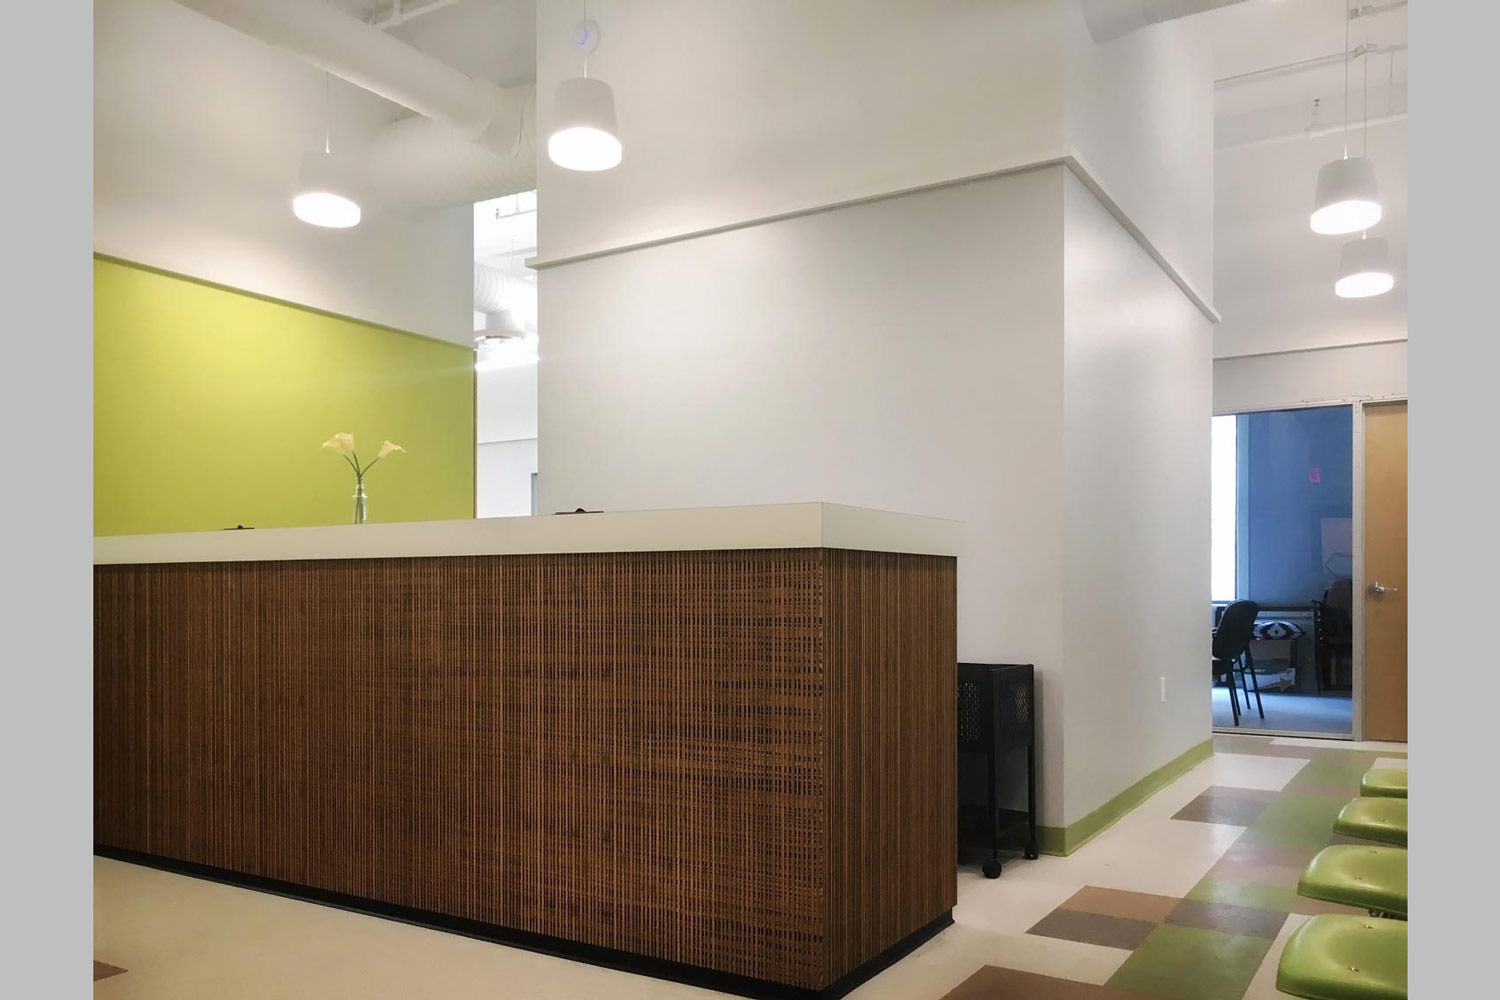 Corporate headquarters build-out by OCV Architects for Community Counseling & Mediation.